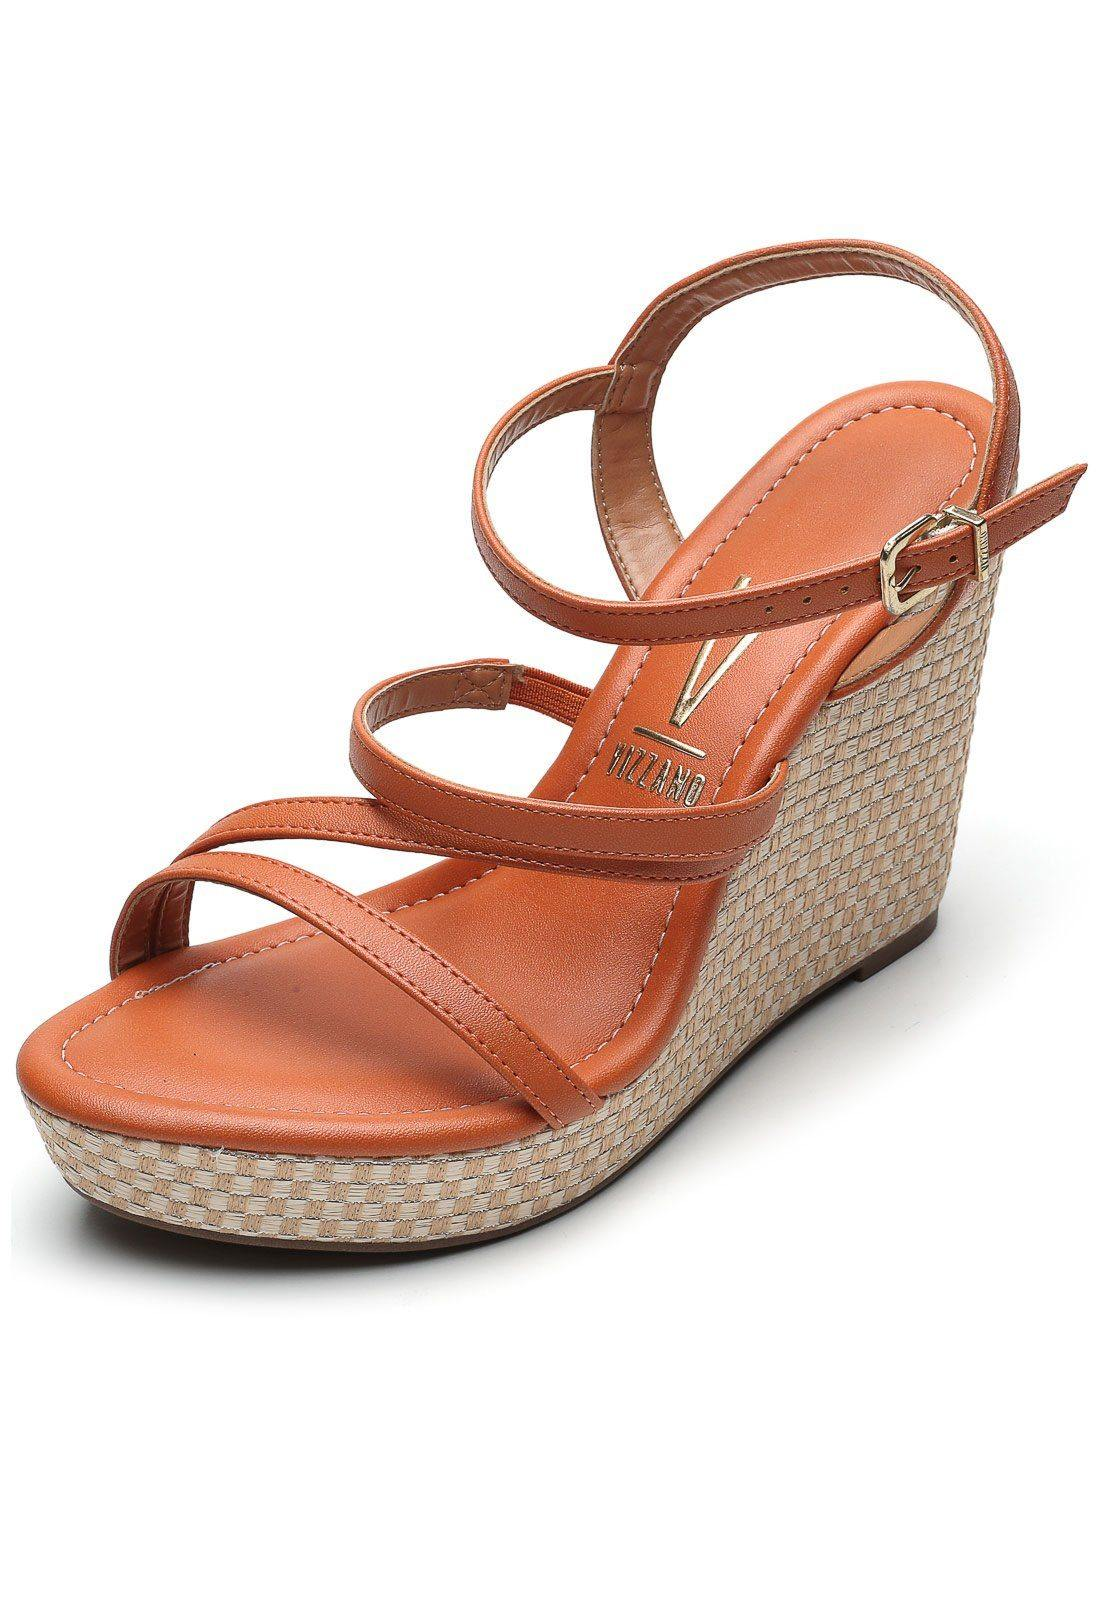 Vizzano 6283-2055 Strappy Wedge Sandal in Orange Napa